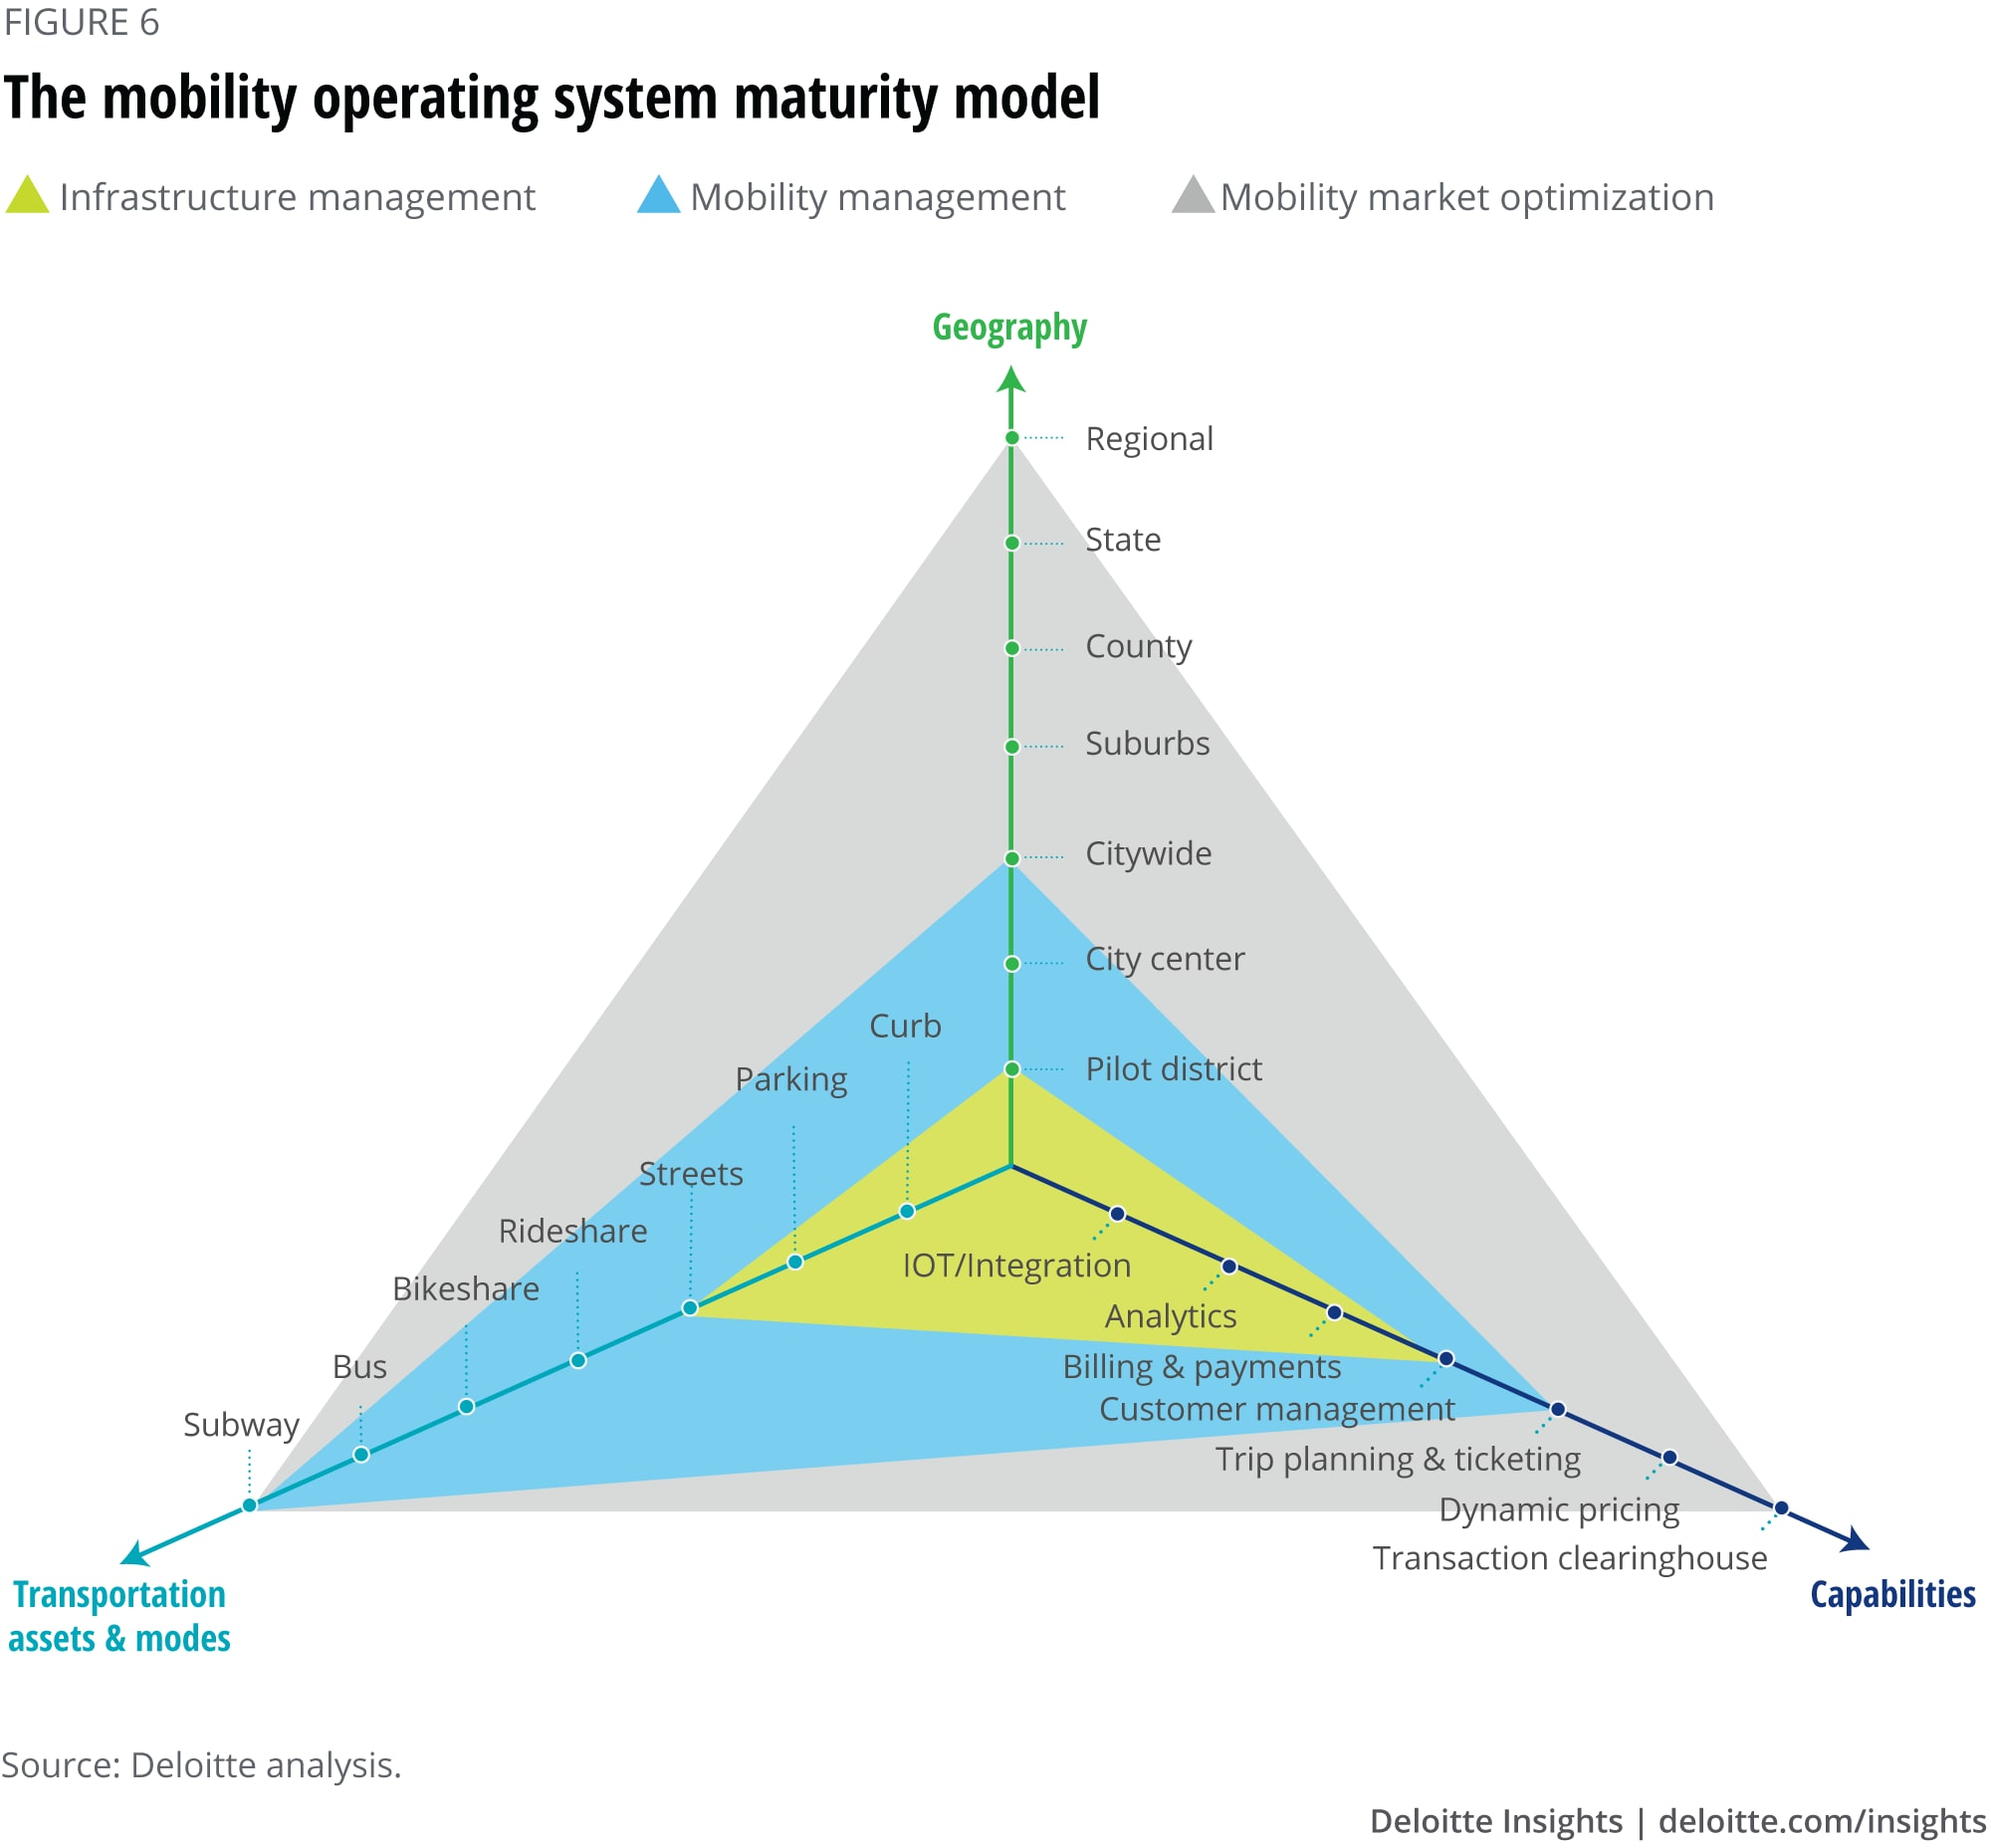 The mobility operating system maturity model